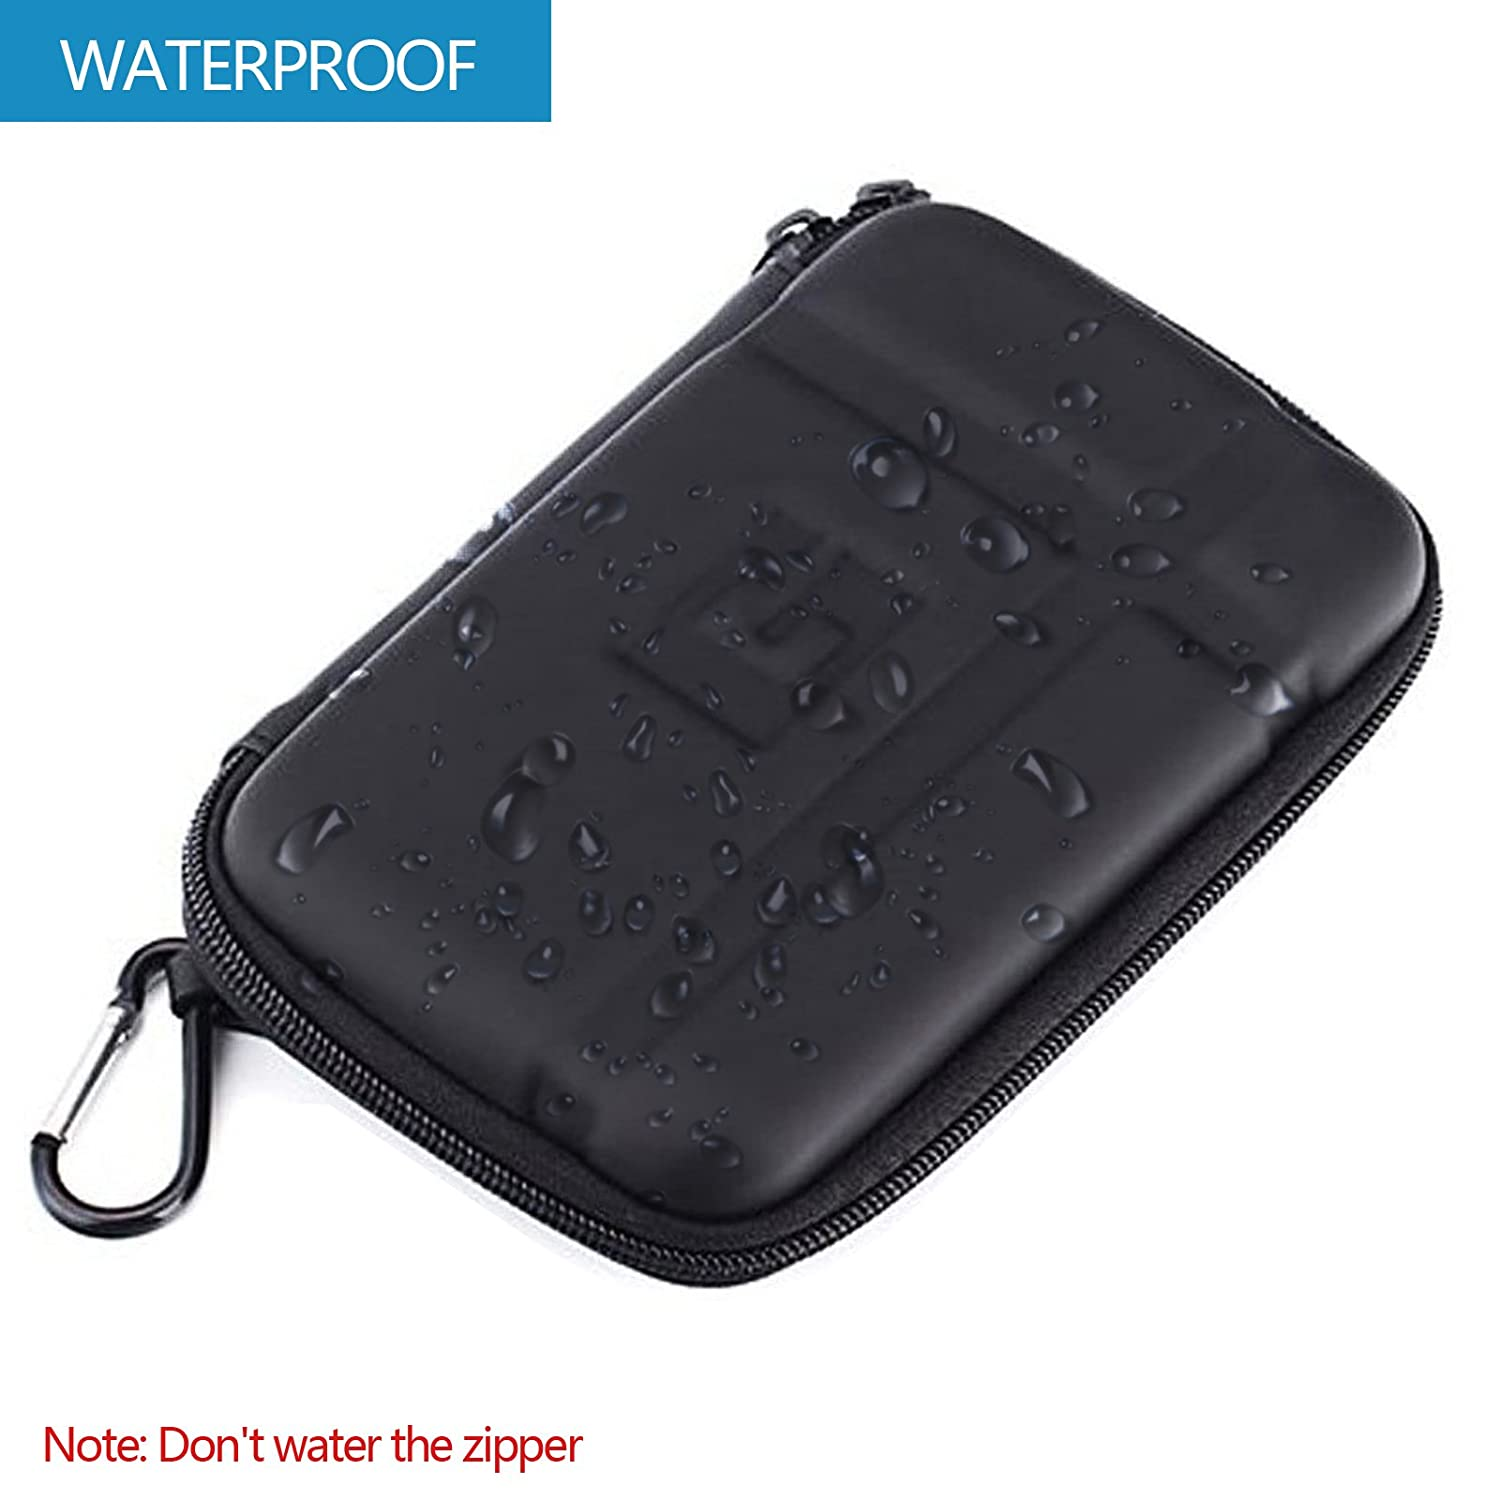 GPS Carrying Case Travel Zipper Hard Shockproof Protective Cover 5 5.2 Pouch Bag for 5 inch Car GPS Navigator Fashionlive 4333155343